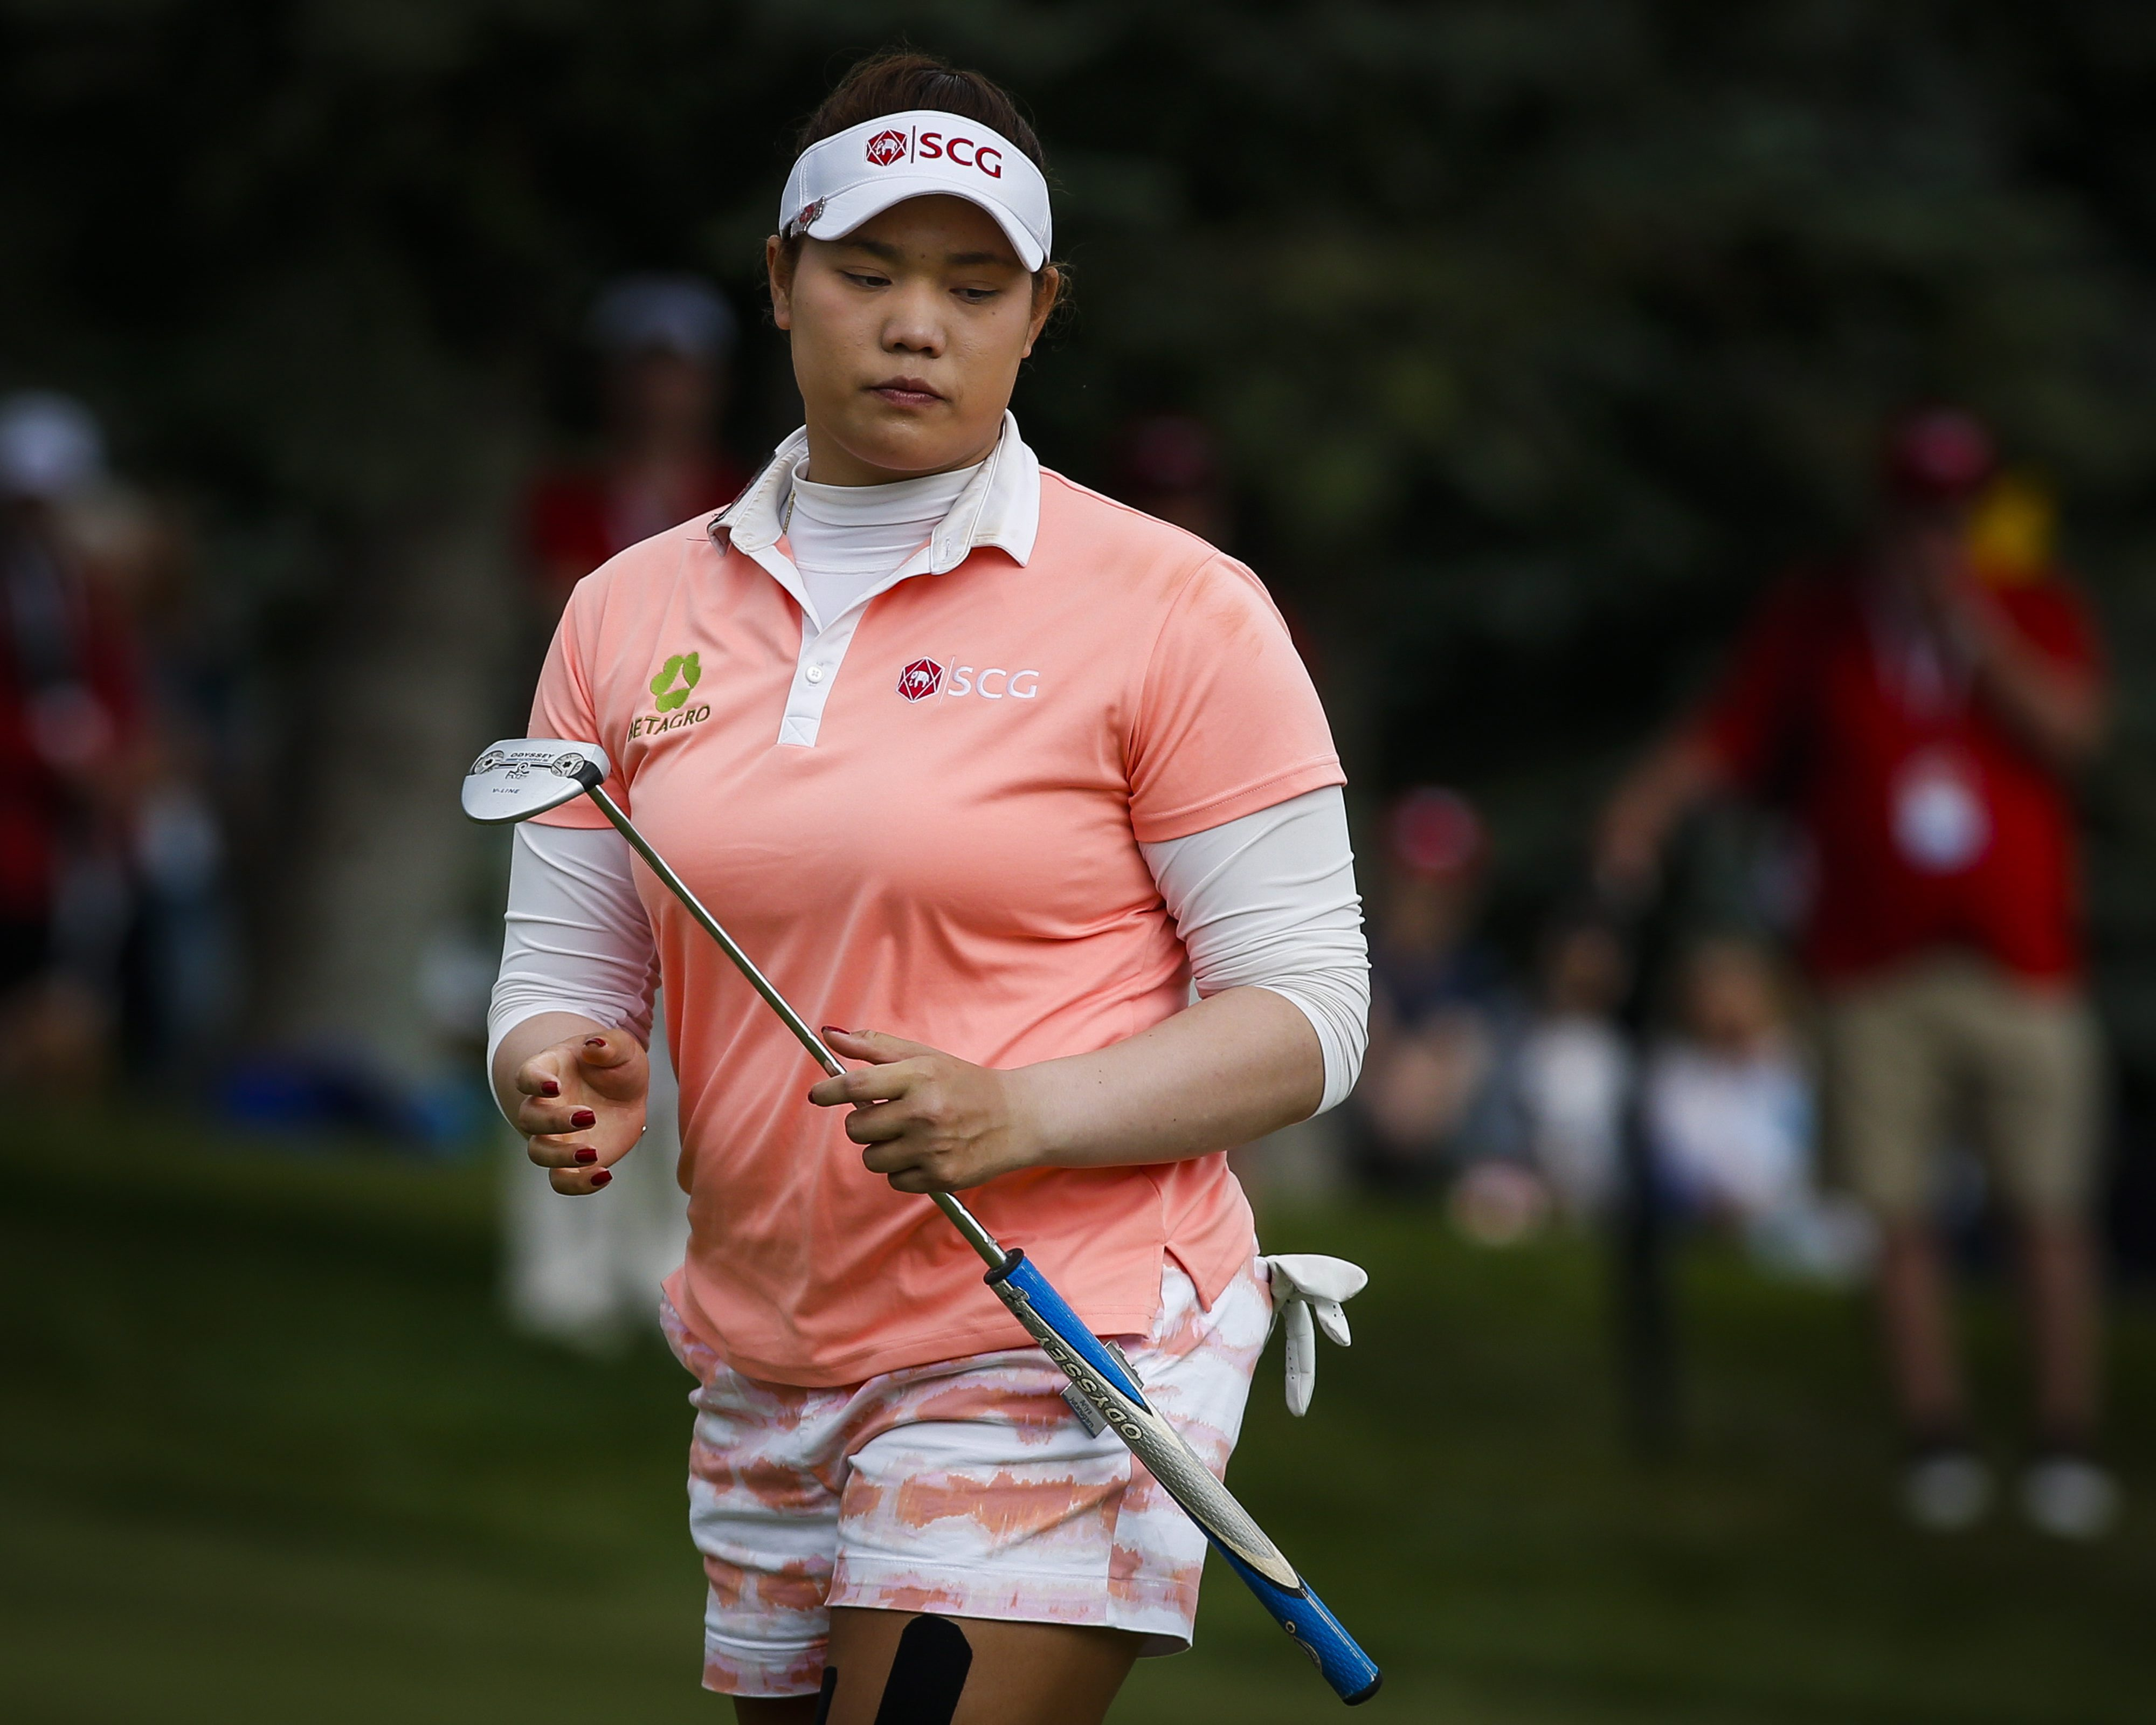 Thailand's Ariya Jutanugarn reacts to her putt on the 18th green during the third round of the LPGA Canadian Open golf tournament in Priddis, Alberta, Saturday, Aug. 27, 2016. (Jeff McIntosh/The Canadian Press via AP)